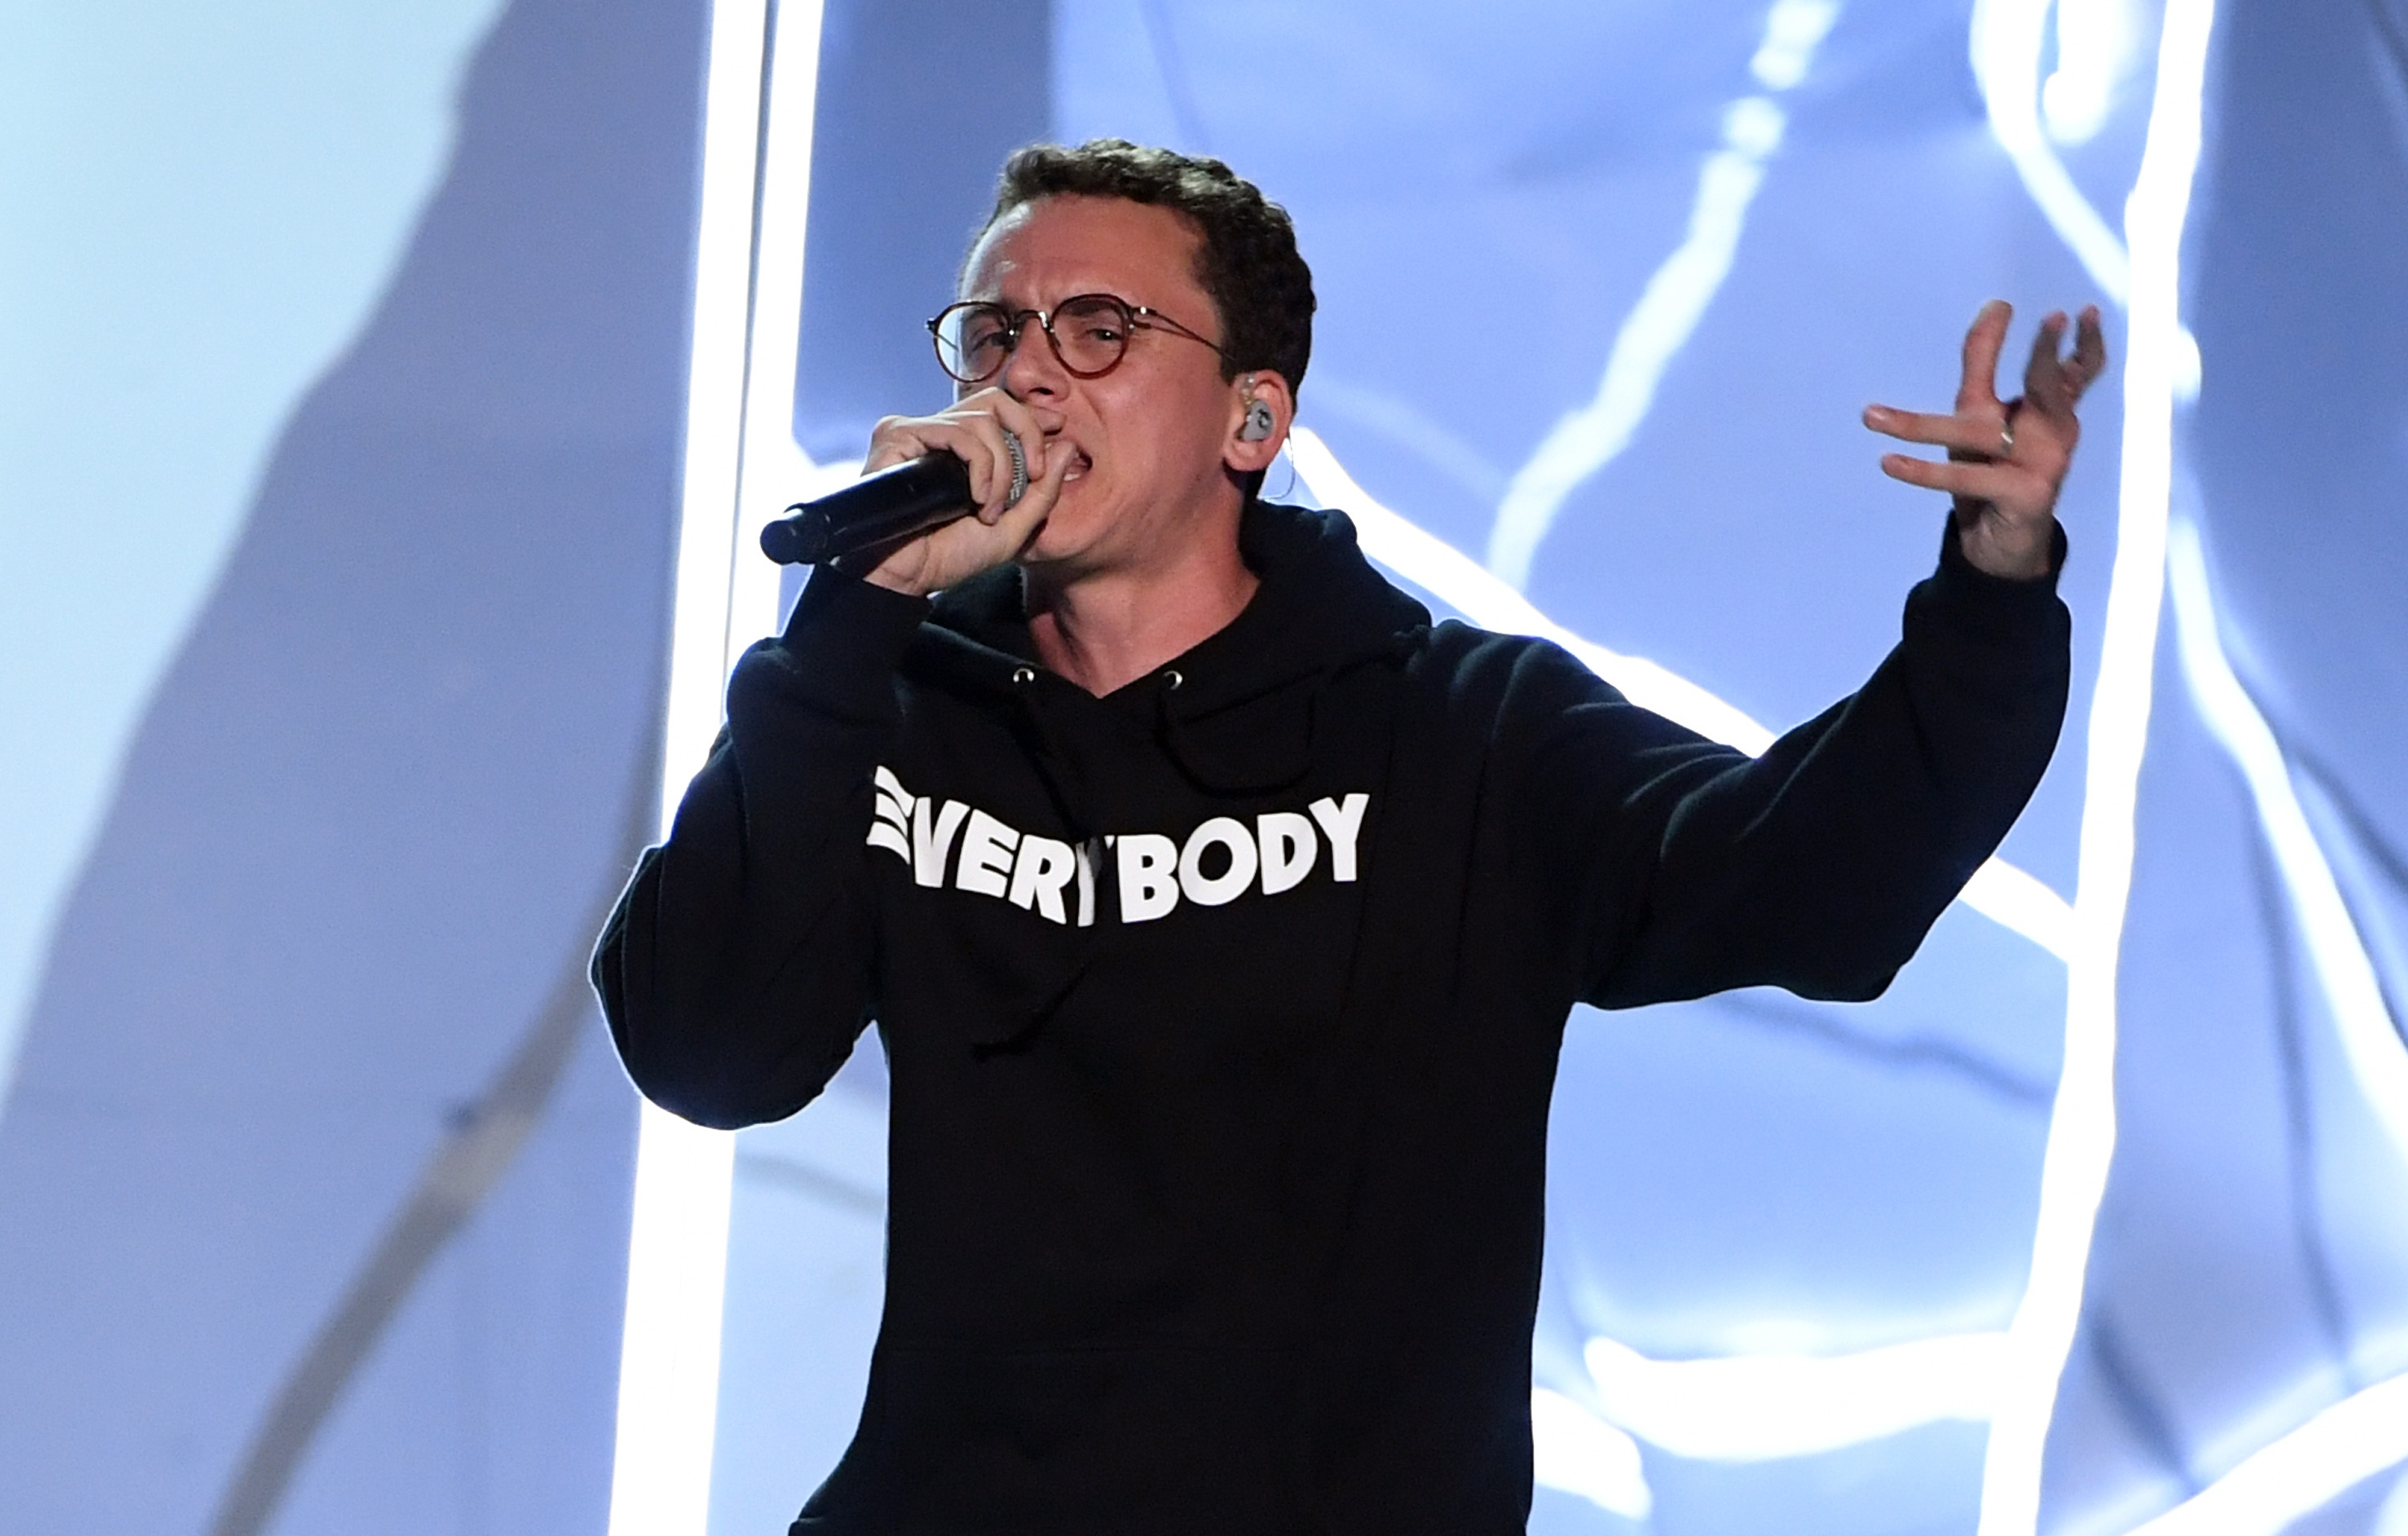 INGLEWOOD, CA - AUGUST 27: Logic performs onstage during the 2017 MTV Video Music Awards at The Forum on August 27, 2017 in Inglewood, California. (Photo by Kevin Winter/Getty Images)